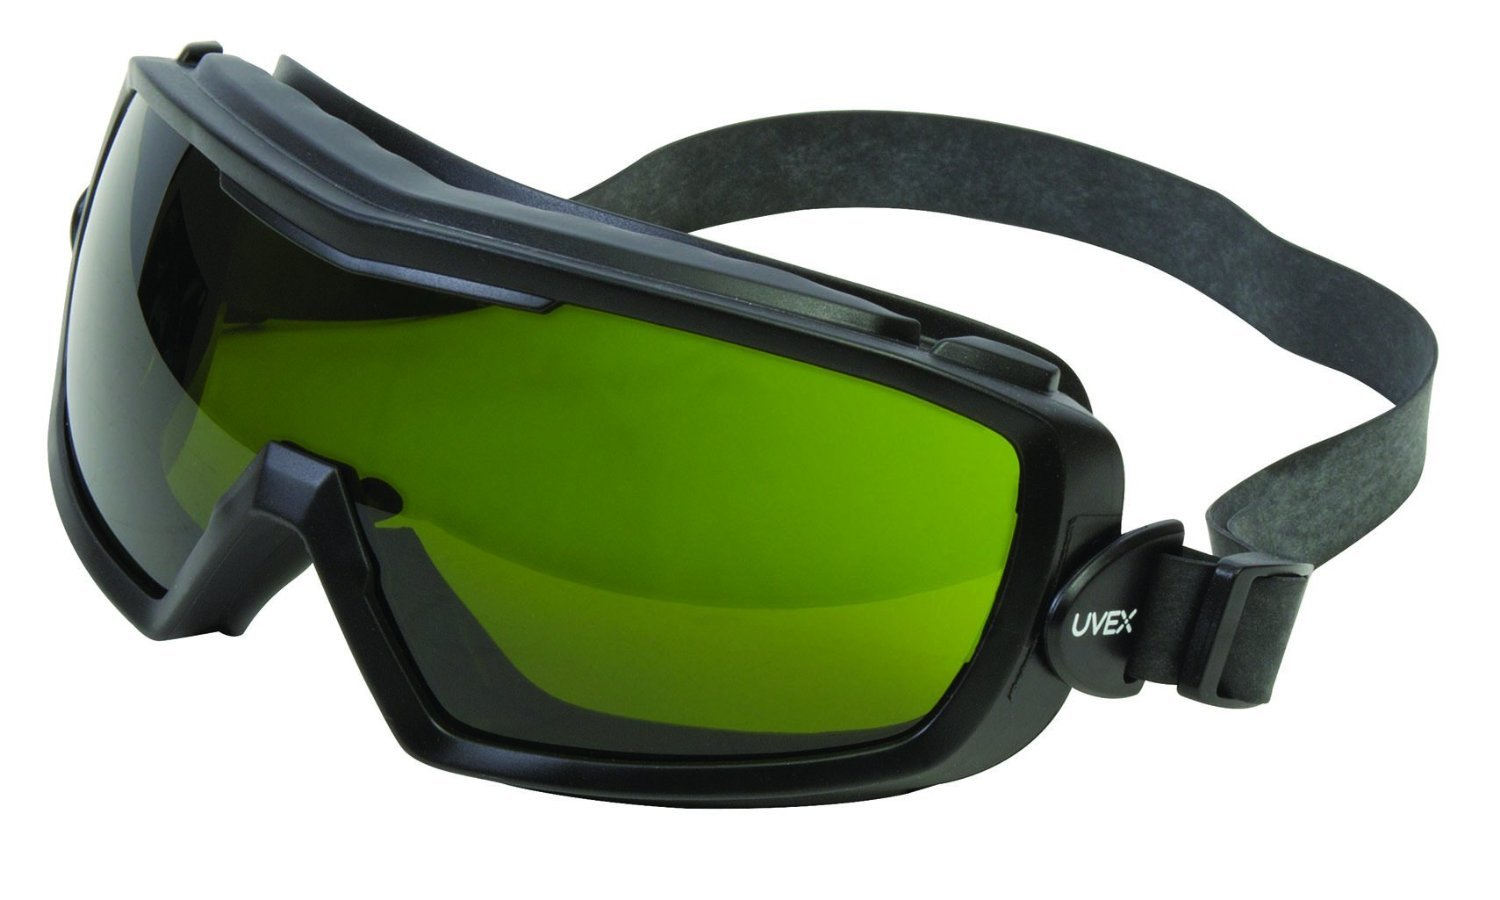 UVEX by Honeywell S3543X Entity Series Goggle with Shade 3.0 Lens, Matte Black Body and Uvextra Anti-Fog Coating